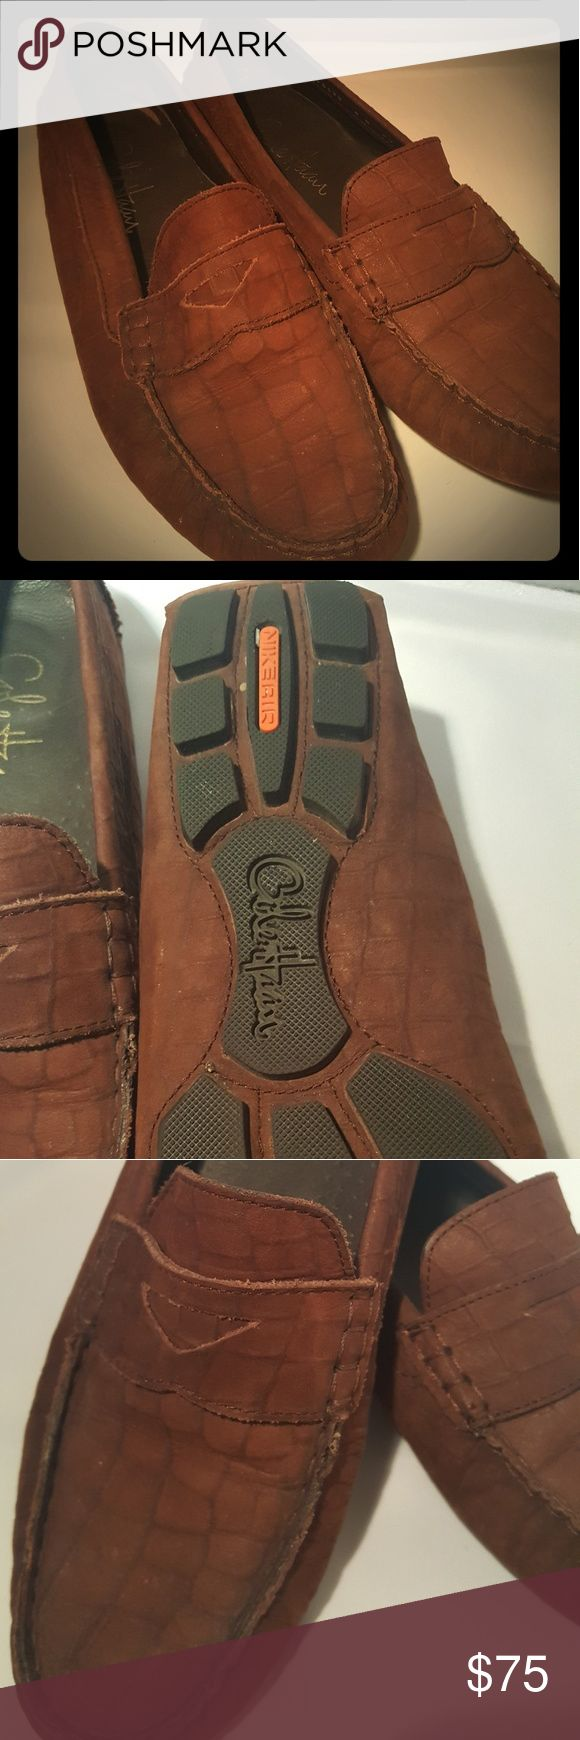 Cole Haan women's Driver shoe Size fits a 7.5  Beautiful suede chocolate color with crocodile pattern. This loader is super comfy. The tread on the bottom is perfect. Hardly worn! No box. Cole Haan Shoes Flats & Loafers